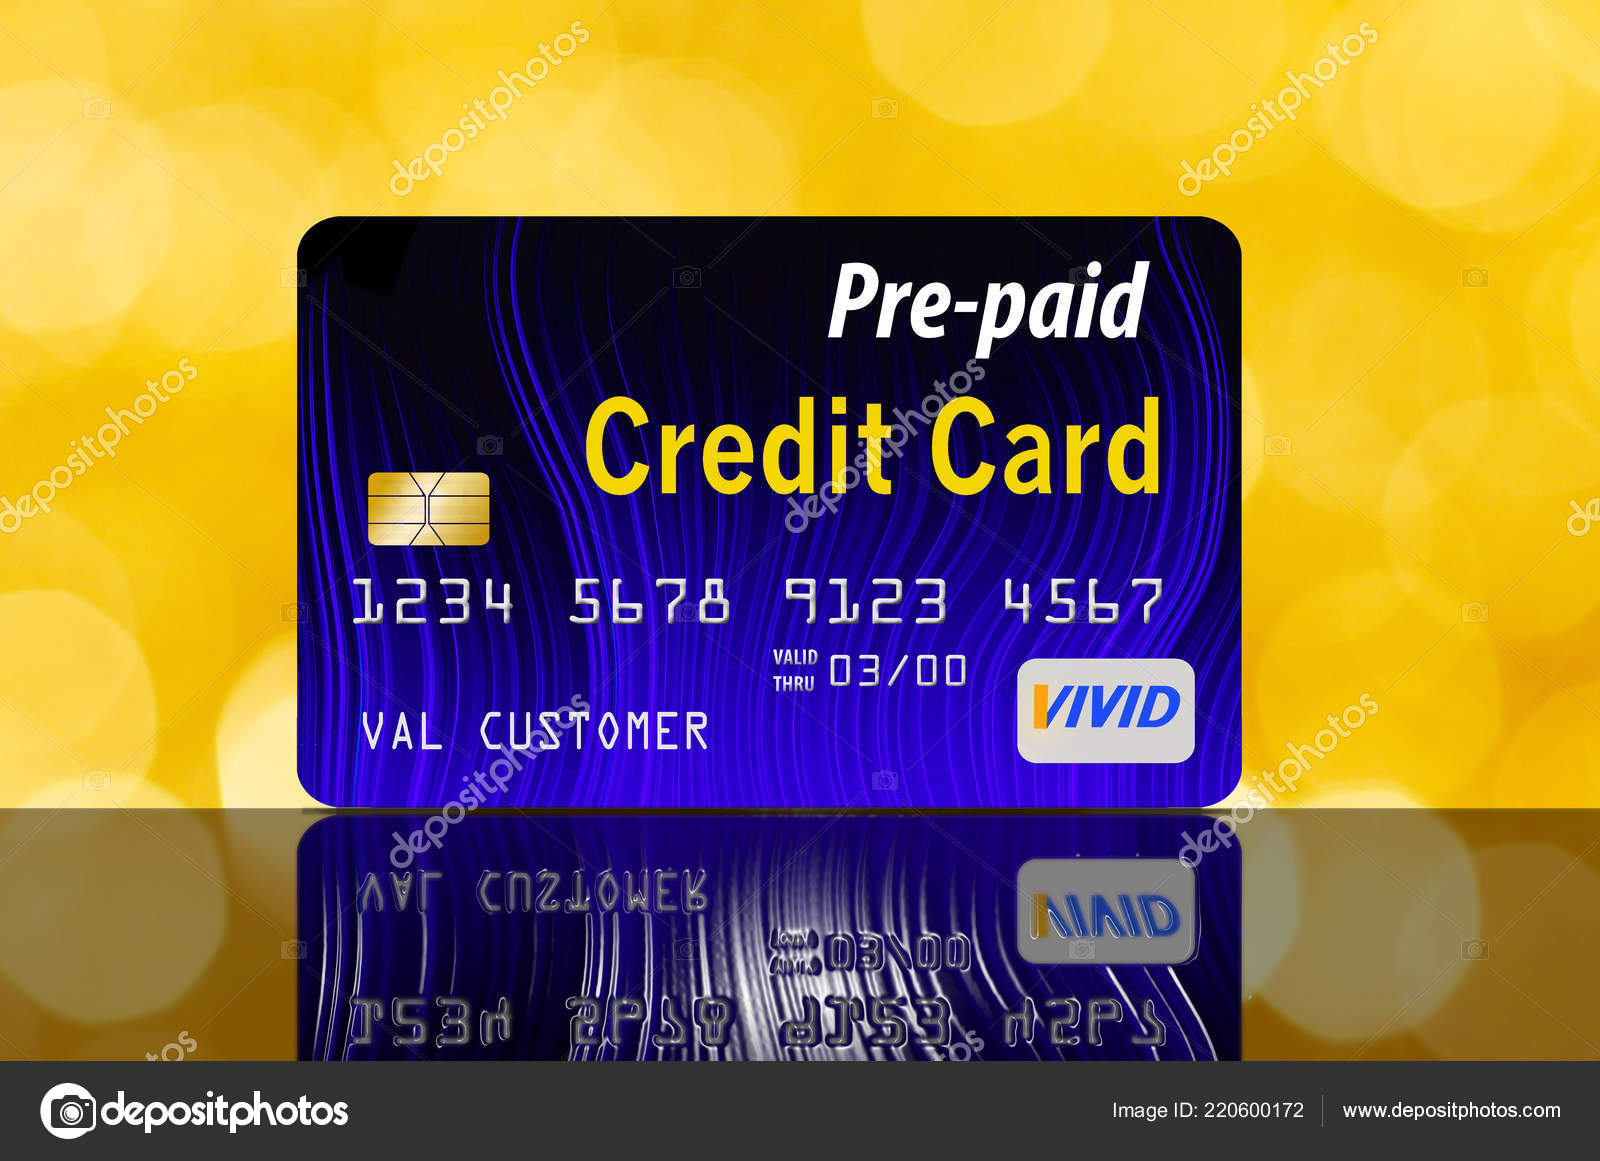 Prepaid Credit Cards >> Here Rechargeable Refillable Prepaid Credit Card Recharge